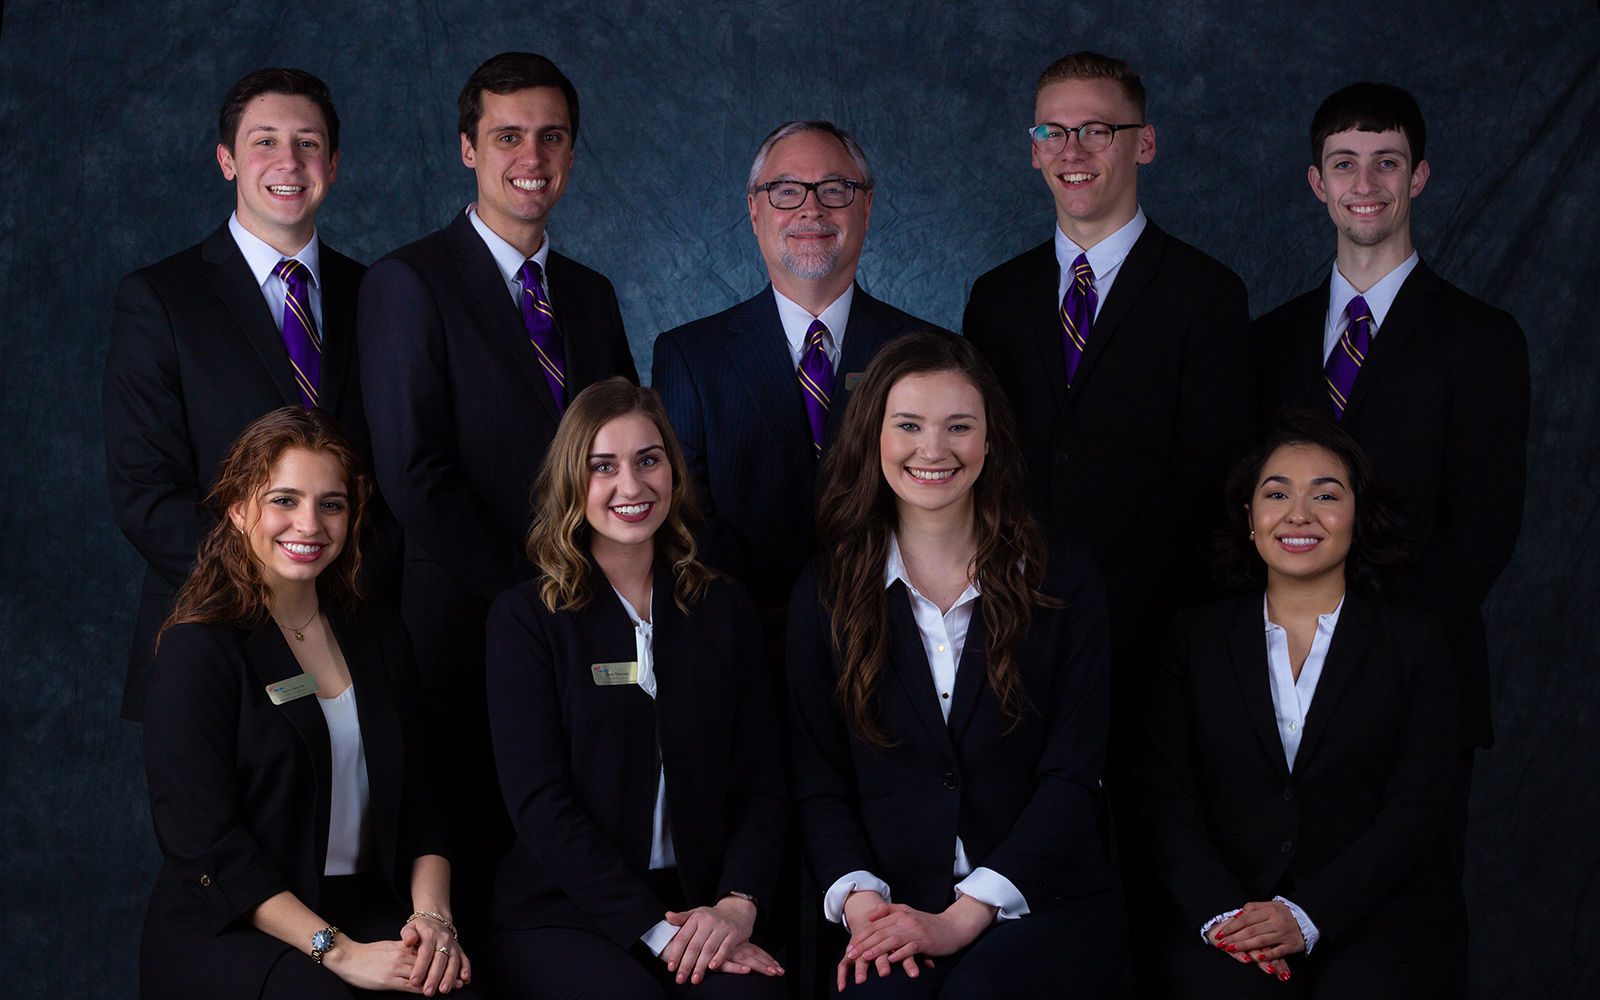 Olivet_mcgraw_school_business_competition_enactus_student_leadership_PBL_web5.jpg